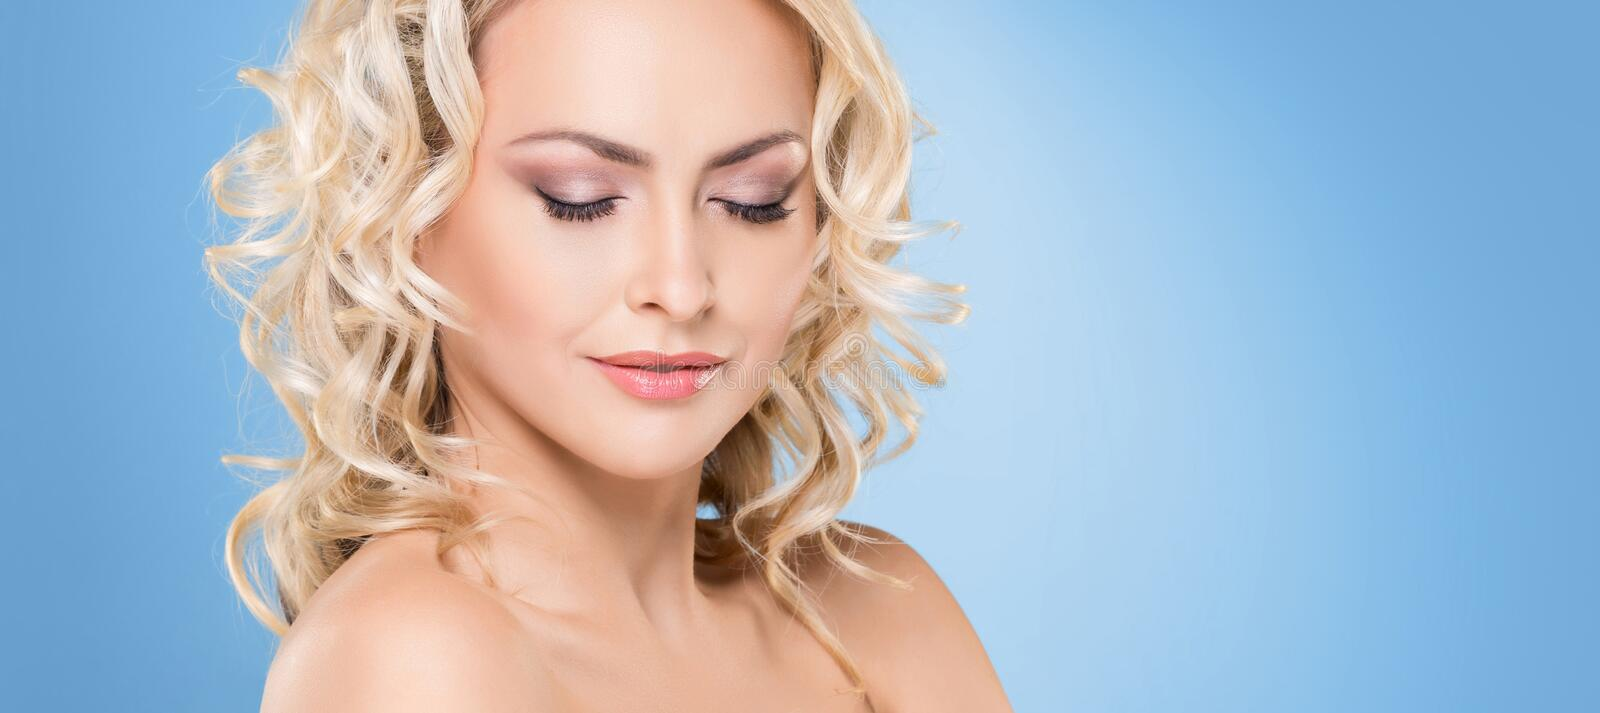 Portrait of young and beautiful blond girl with curly hair. Face lifting and beauty concept. stock images